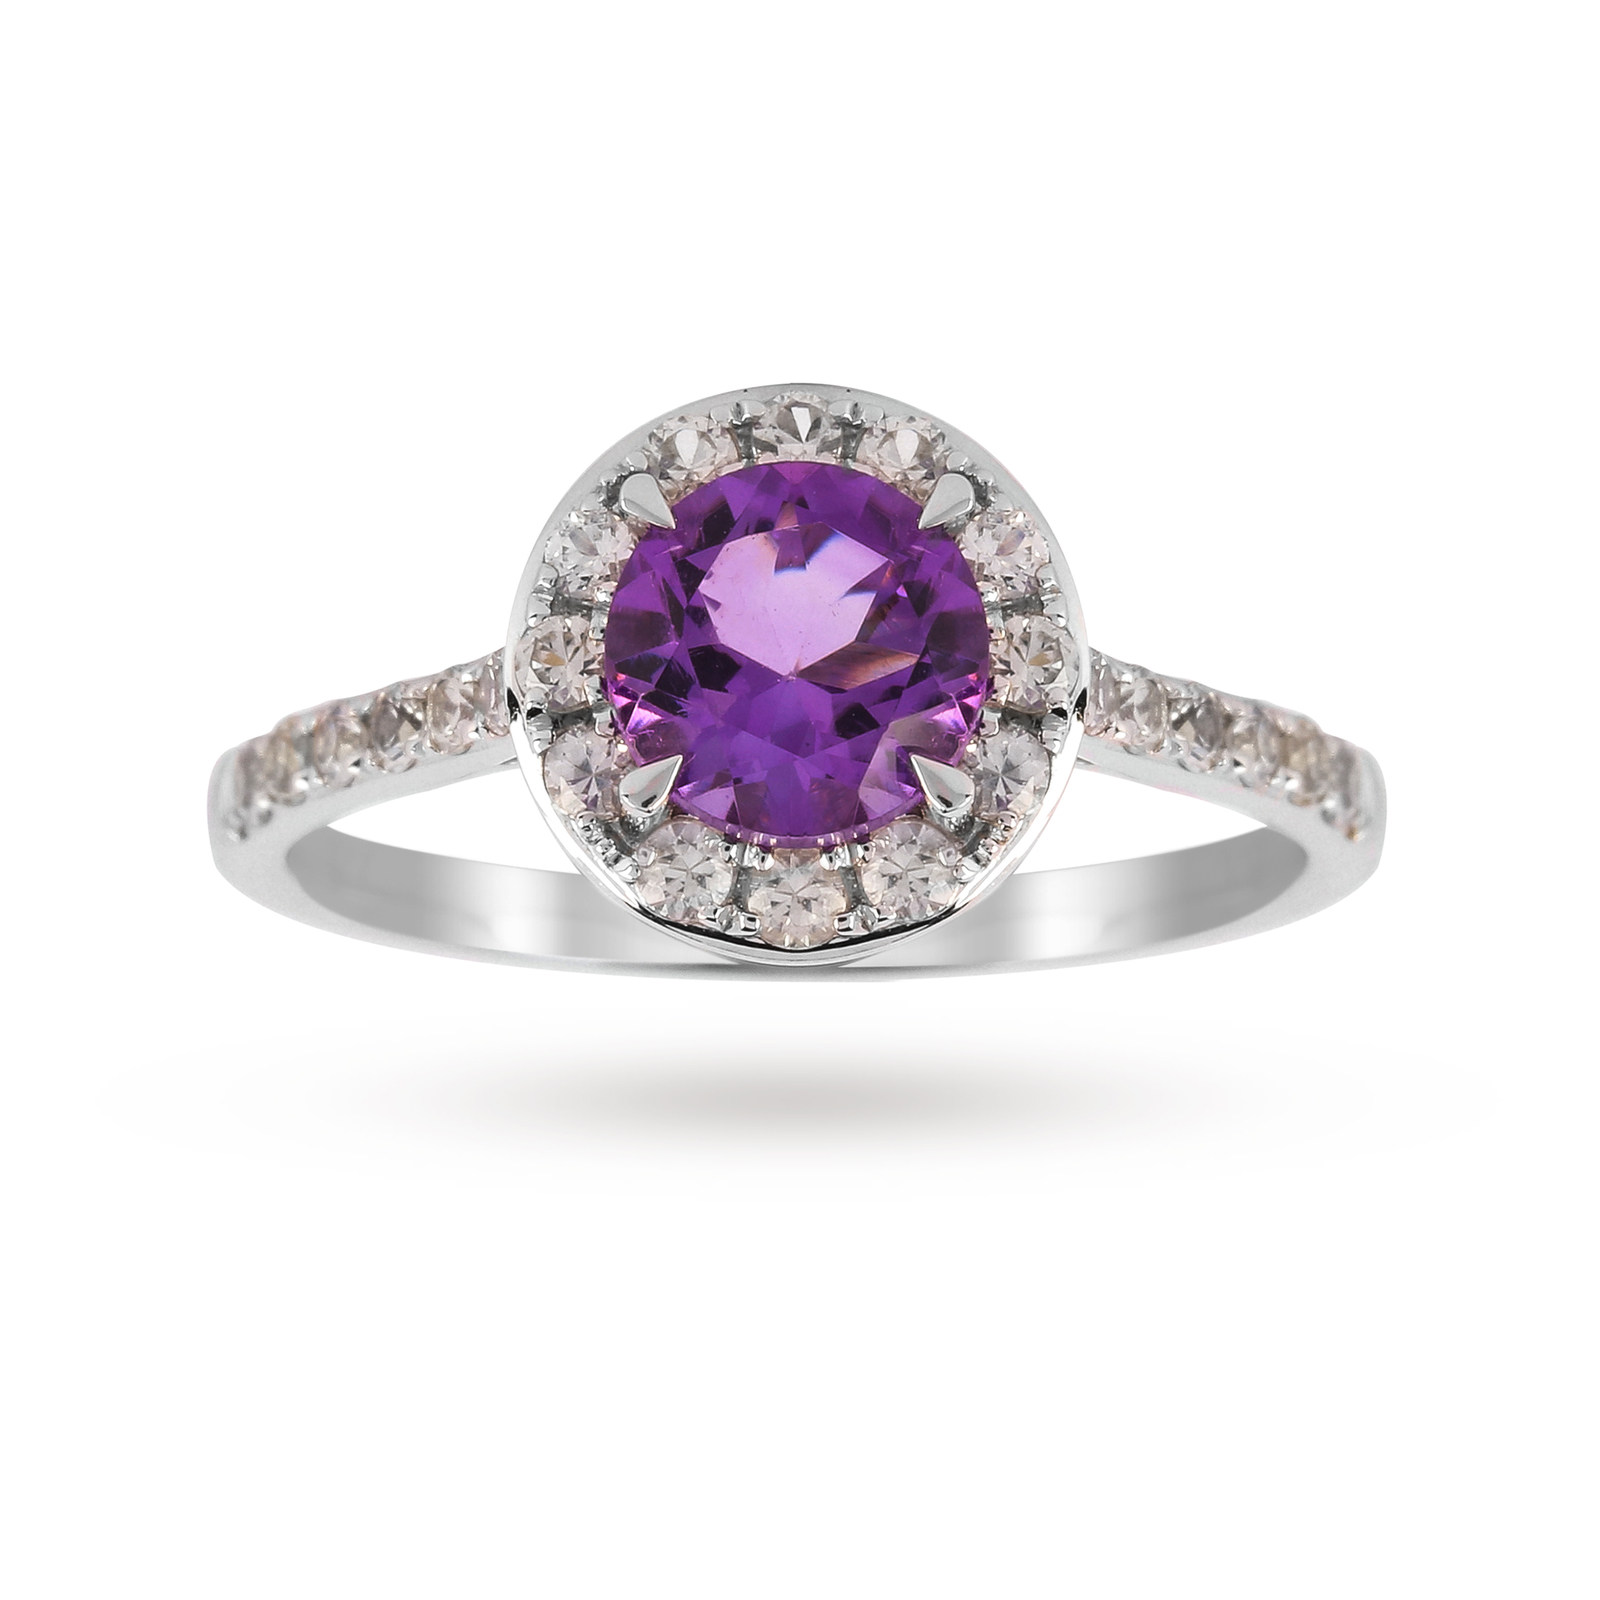 9ct White Gold 6x6mm Amethyst And 0.18ct Diamond Round Halo Ring - Ring Size J